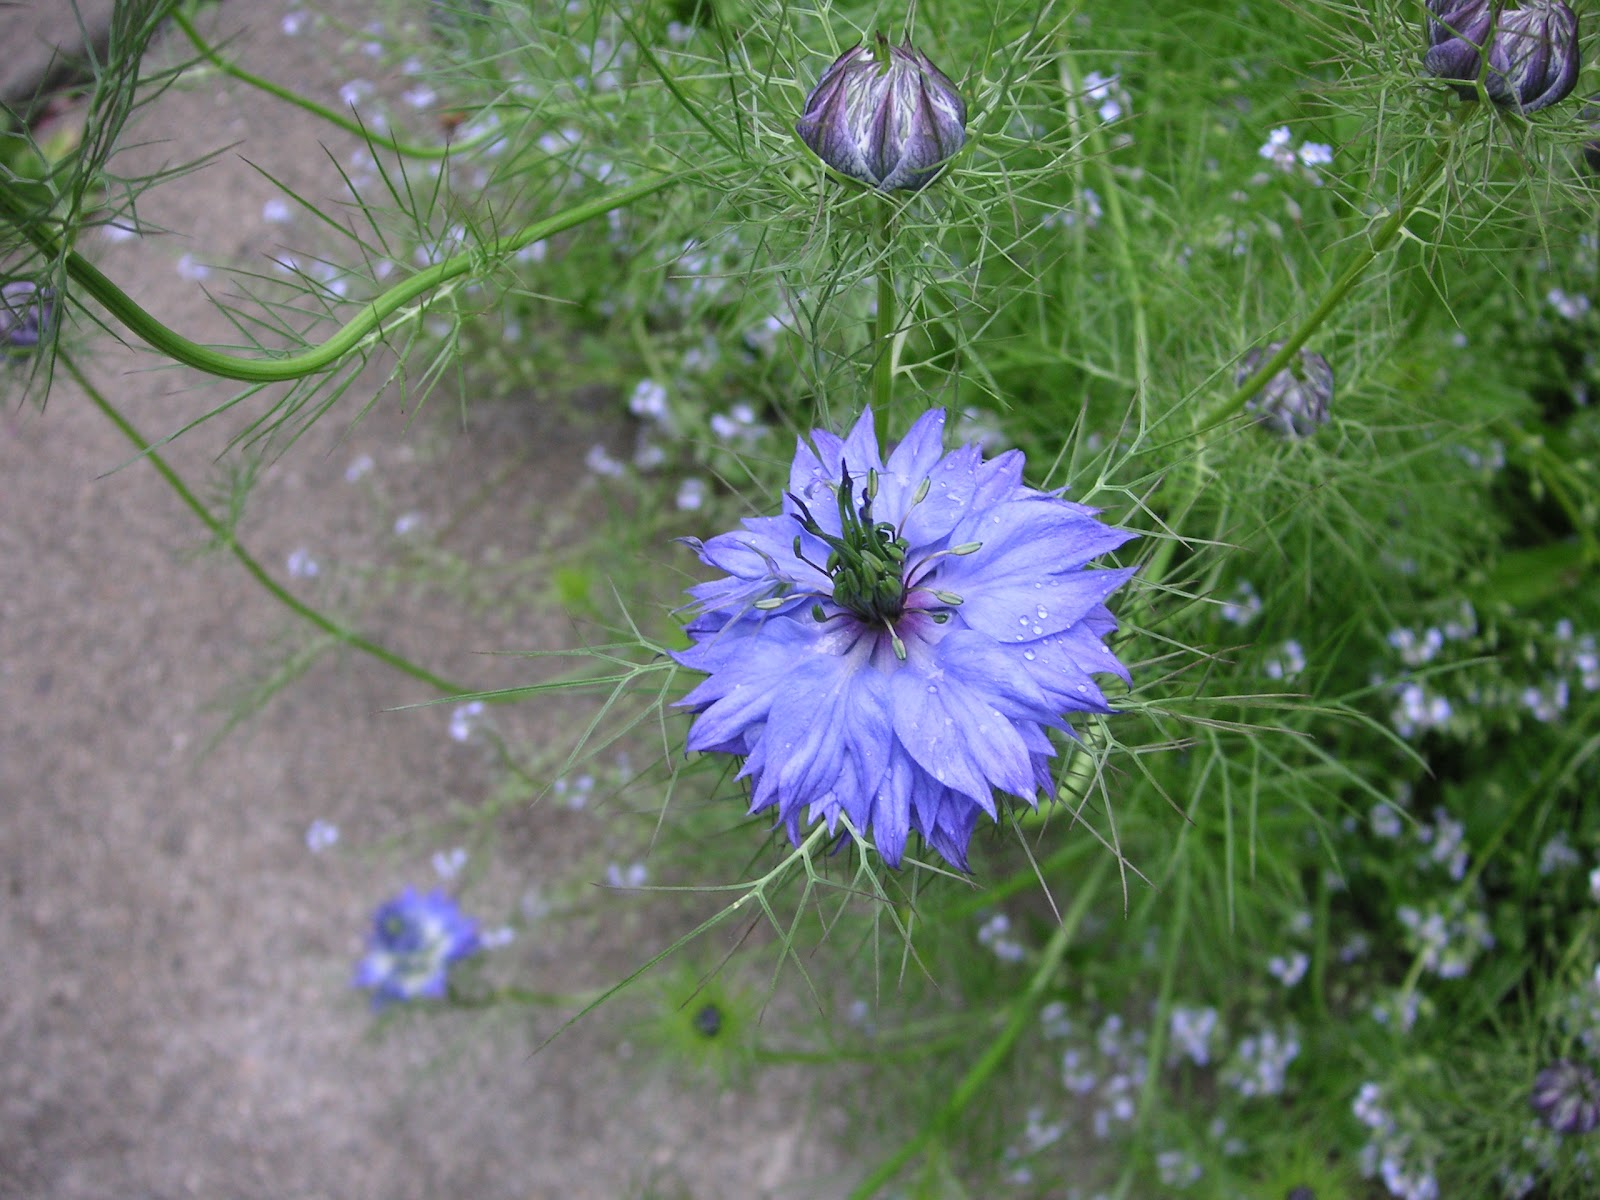 Fertilizer friday my seed babies are blooming that bloomin garden my garden is full of self sowing flowers and this is one that i love having nigella or love in a mist is a lovely blue flower that forms puffy seed pods izmirmasajfo